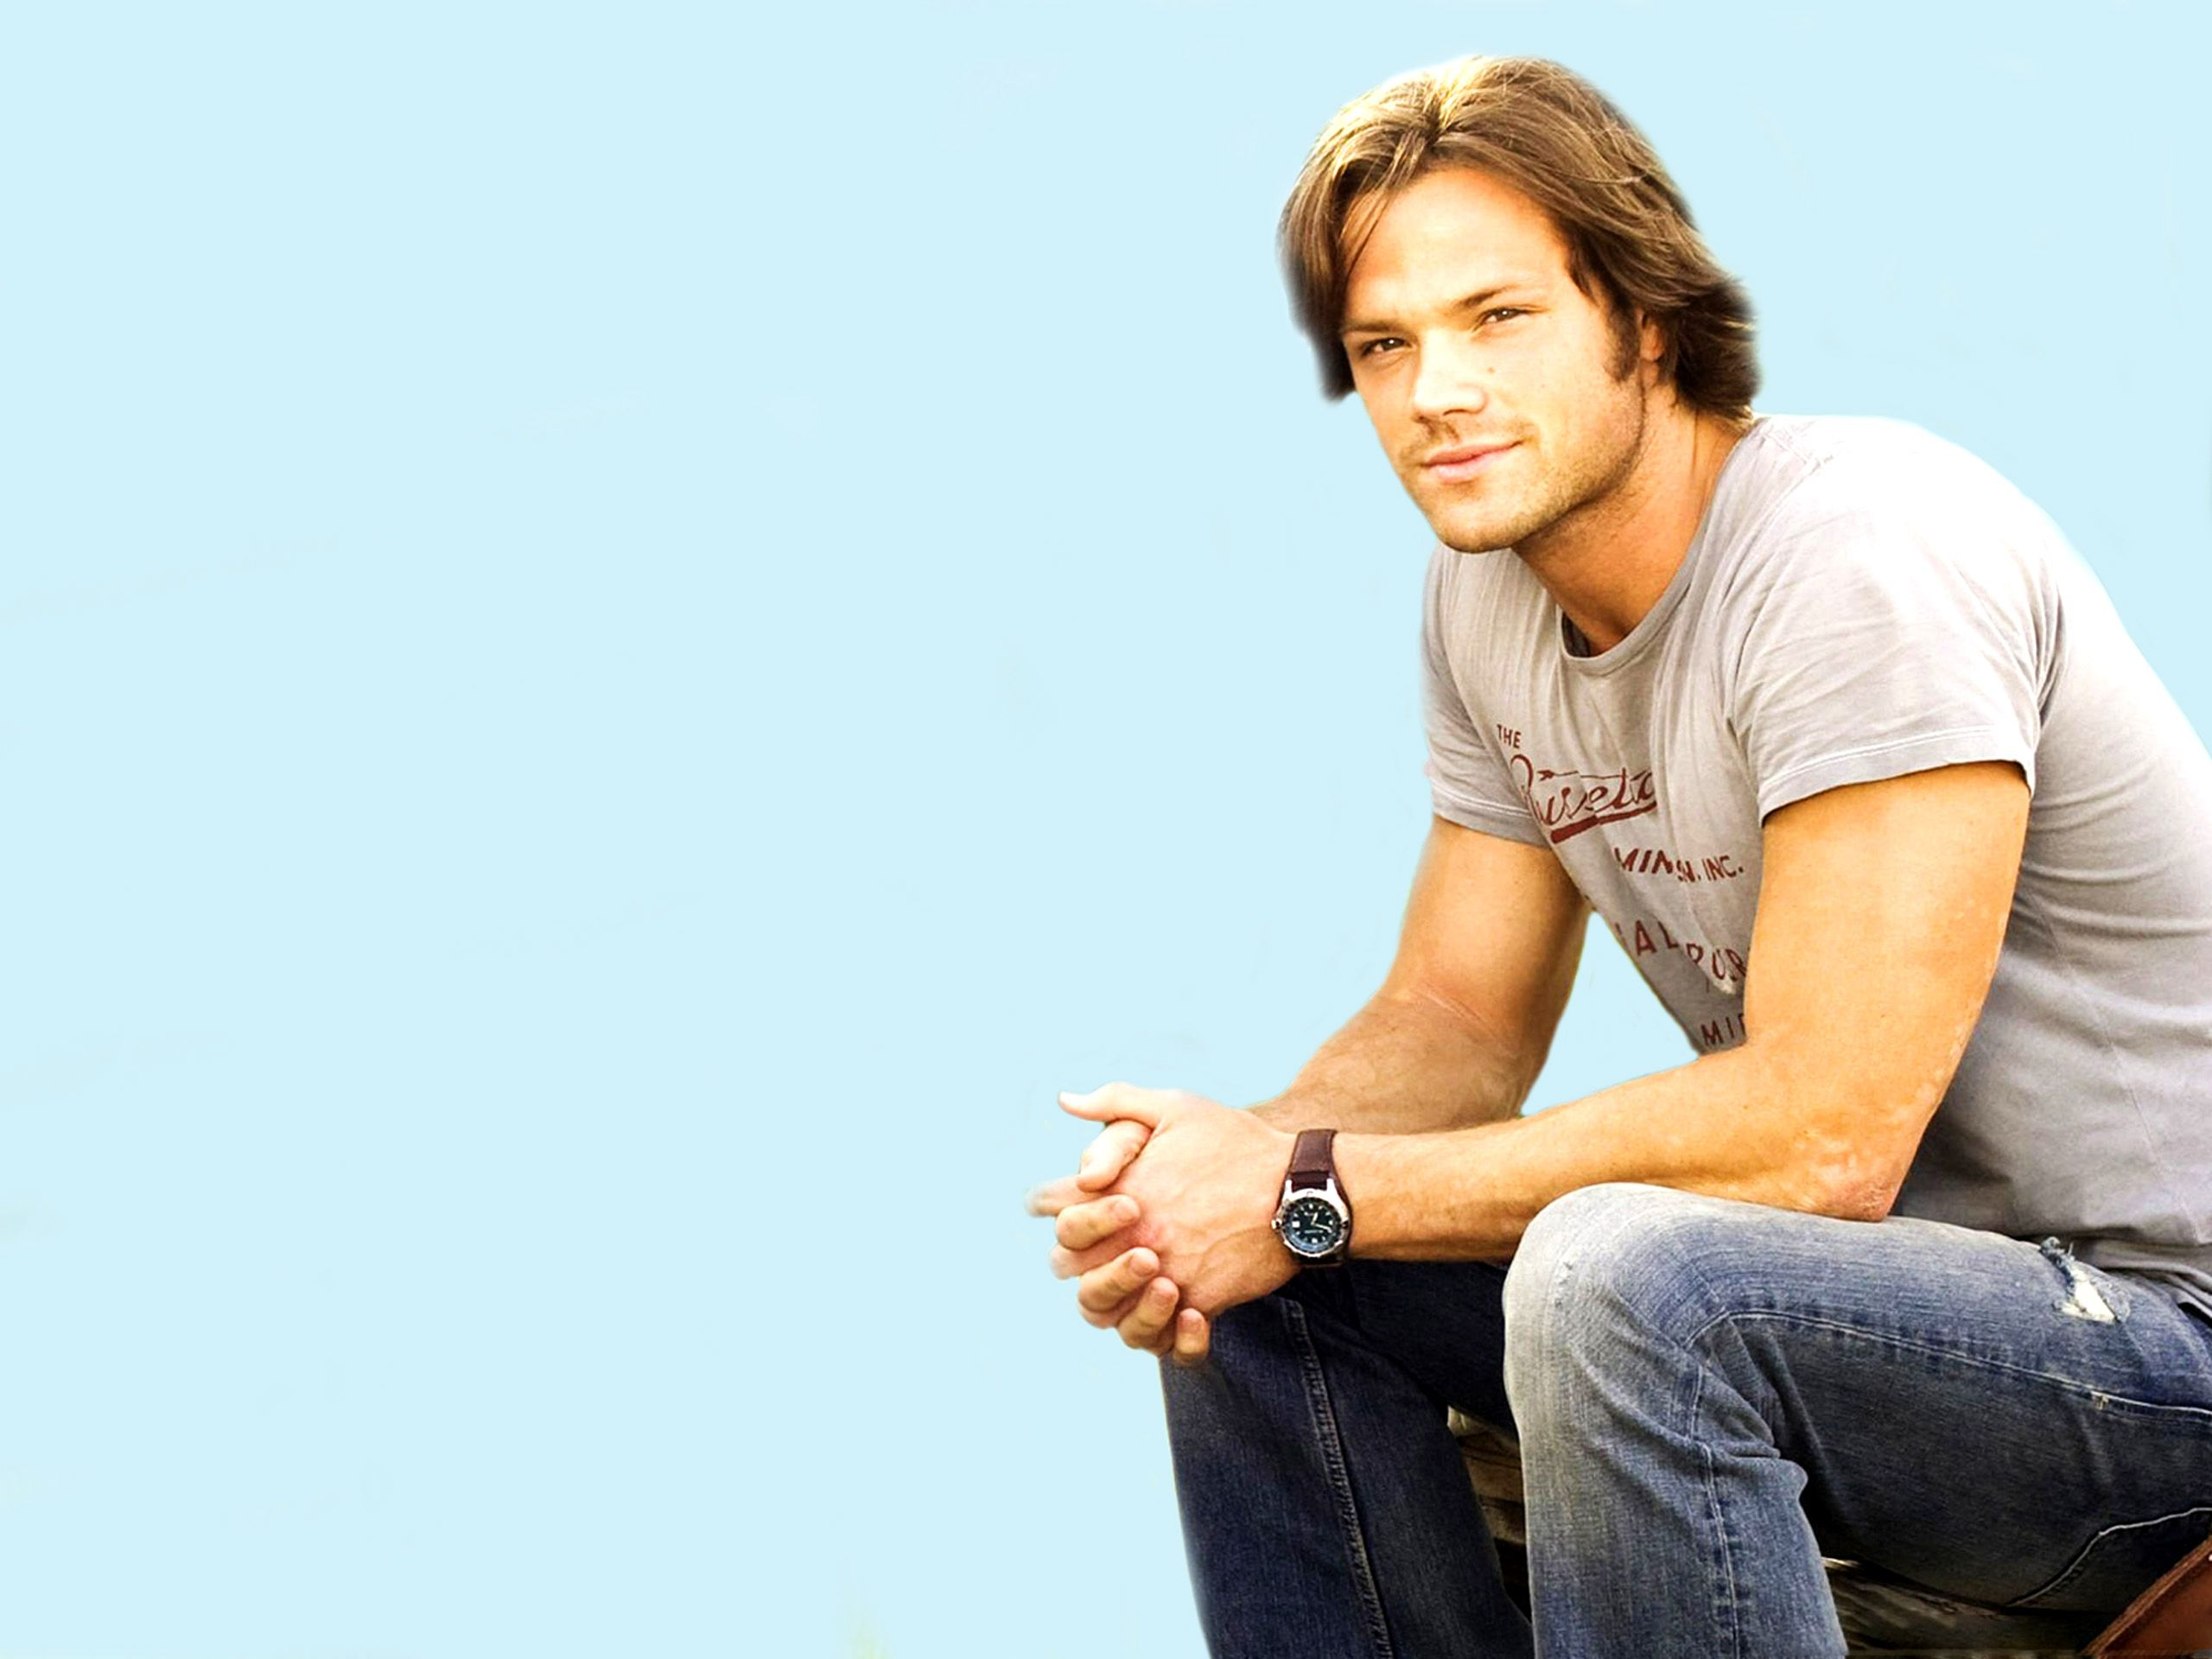 jared padalecki wallpaper background 54666